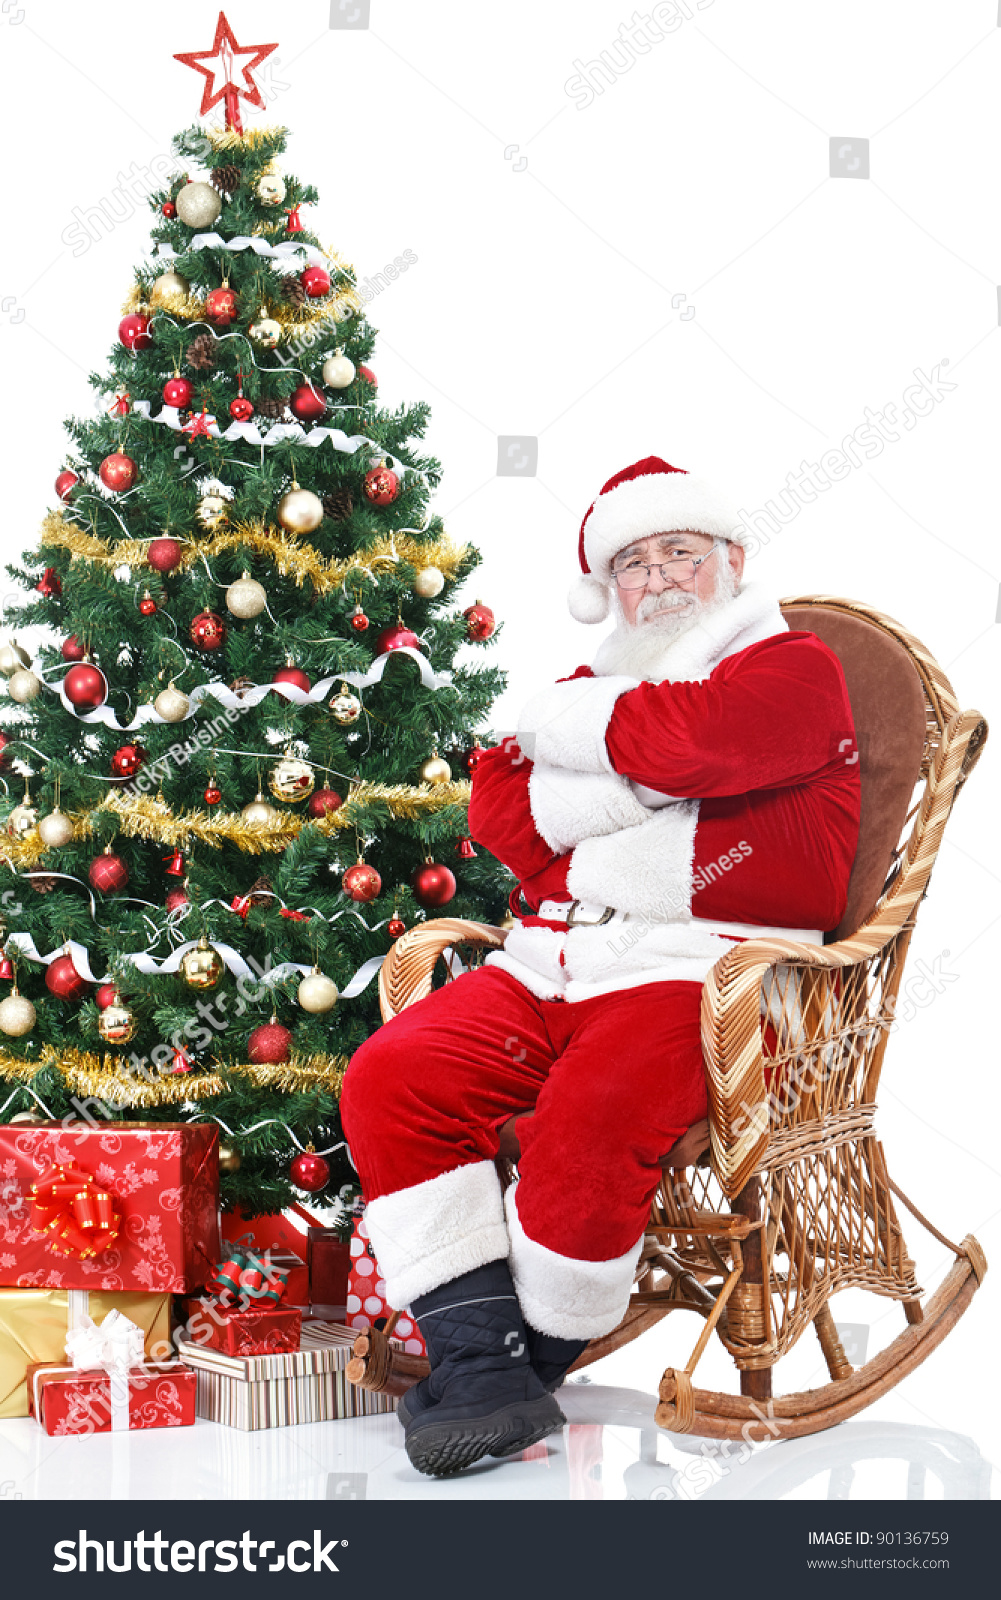 Santa Claus Sitting In Rocking Chair Next Full Decorated